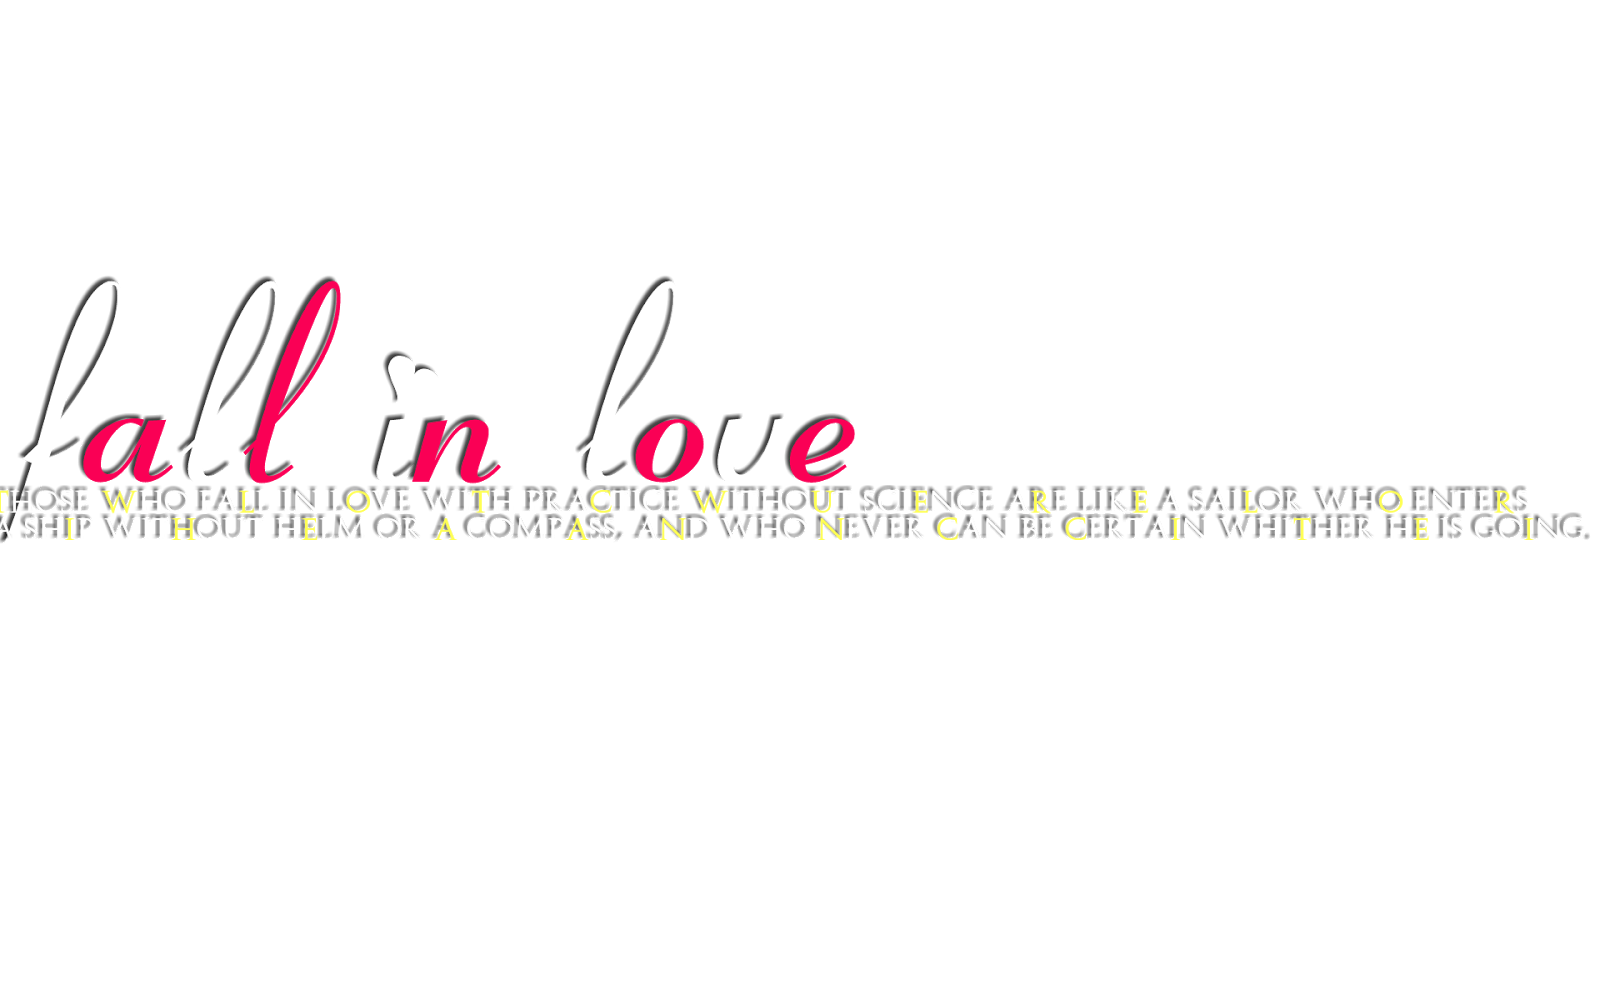 Love Text Png In One Line. By